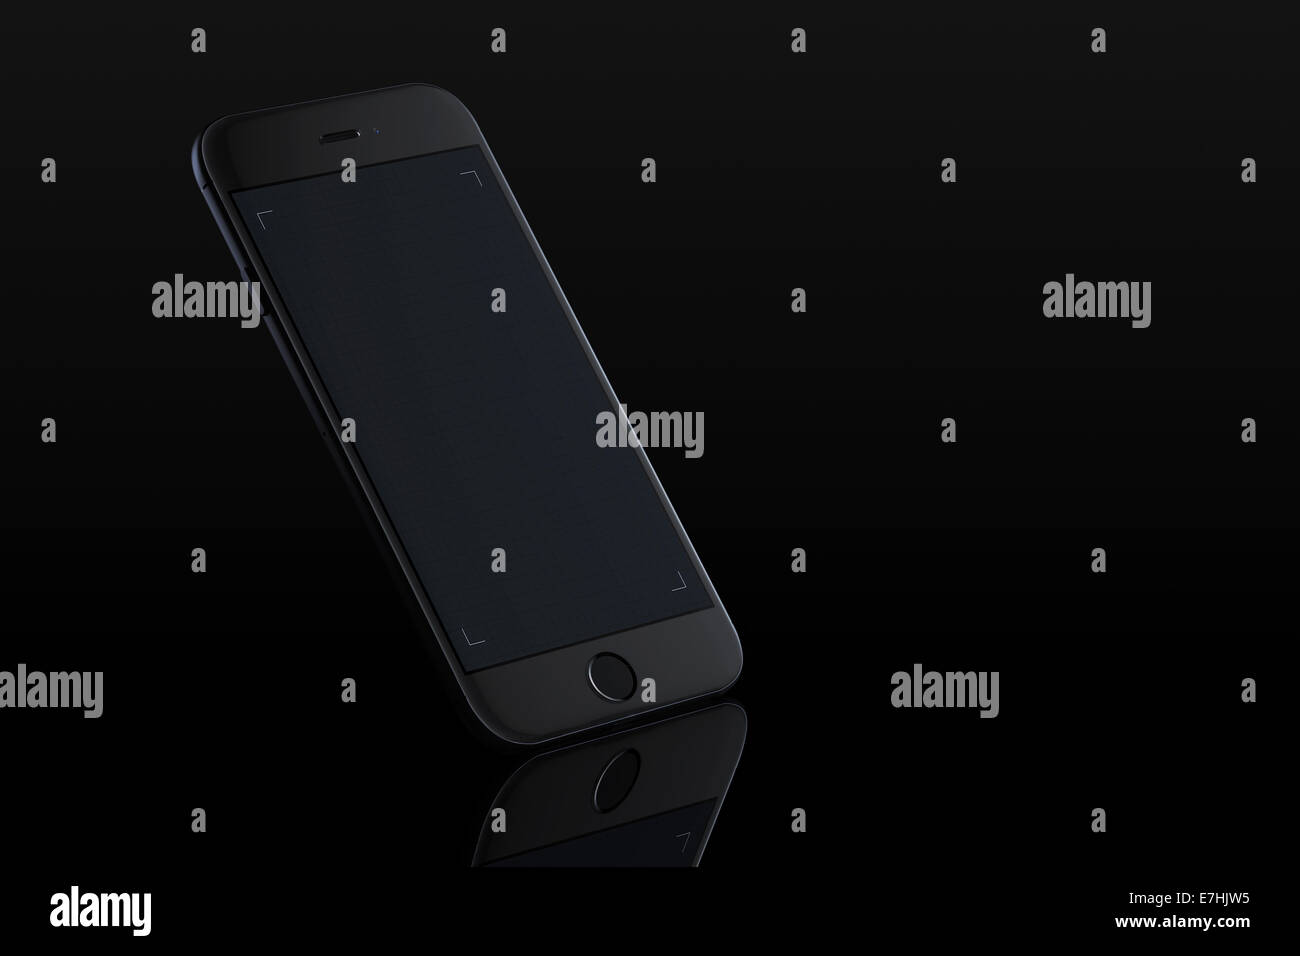 Reflection of smart phone iphone 6 (space gray) on black background, digitally generated artwork. - Stock Image